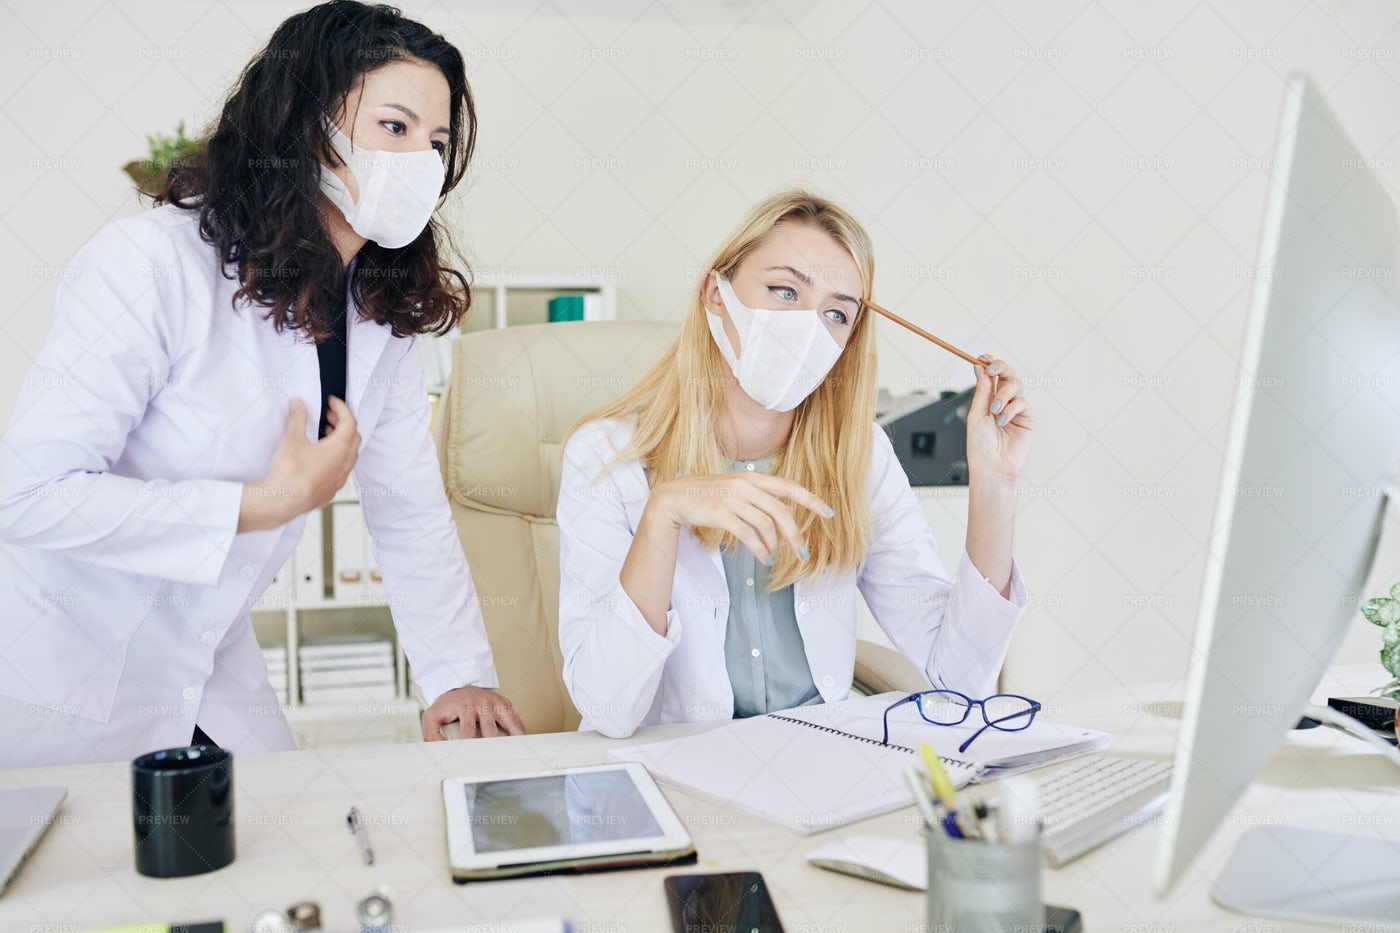 Doctors Researching Together: Stock Photos